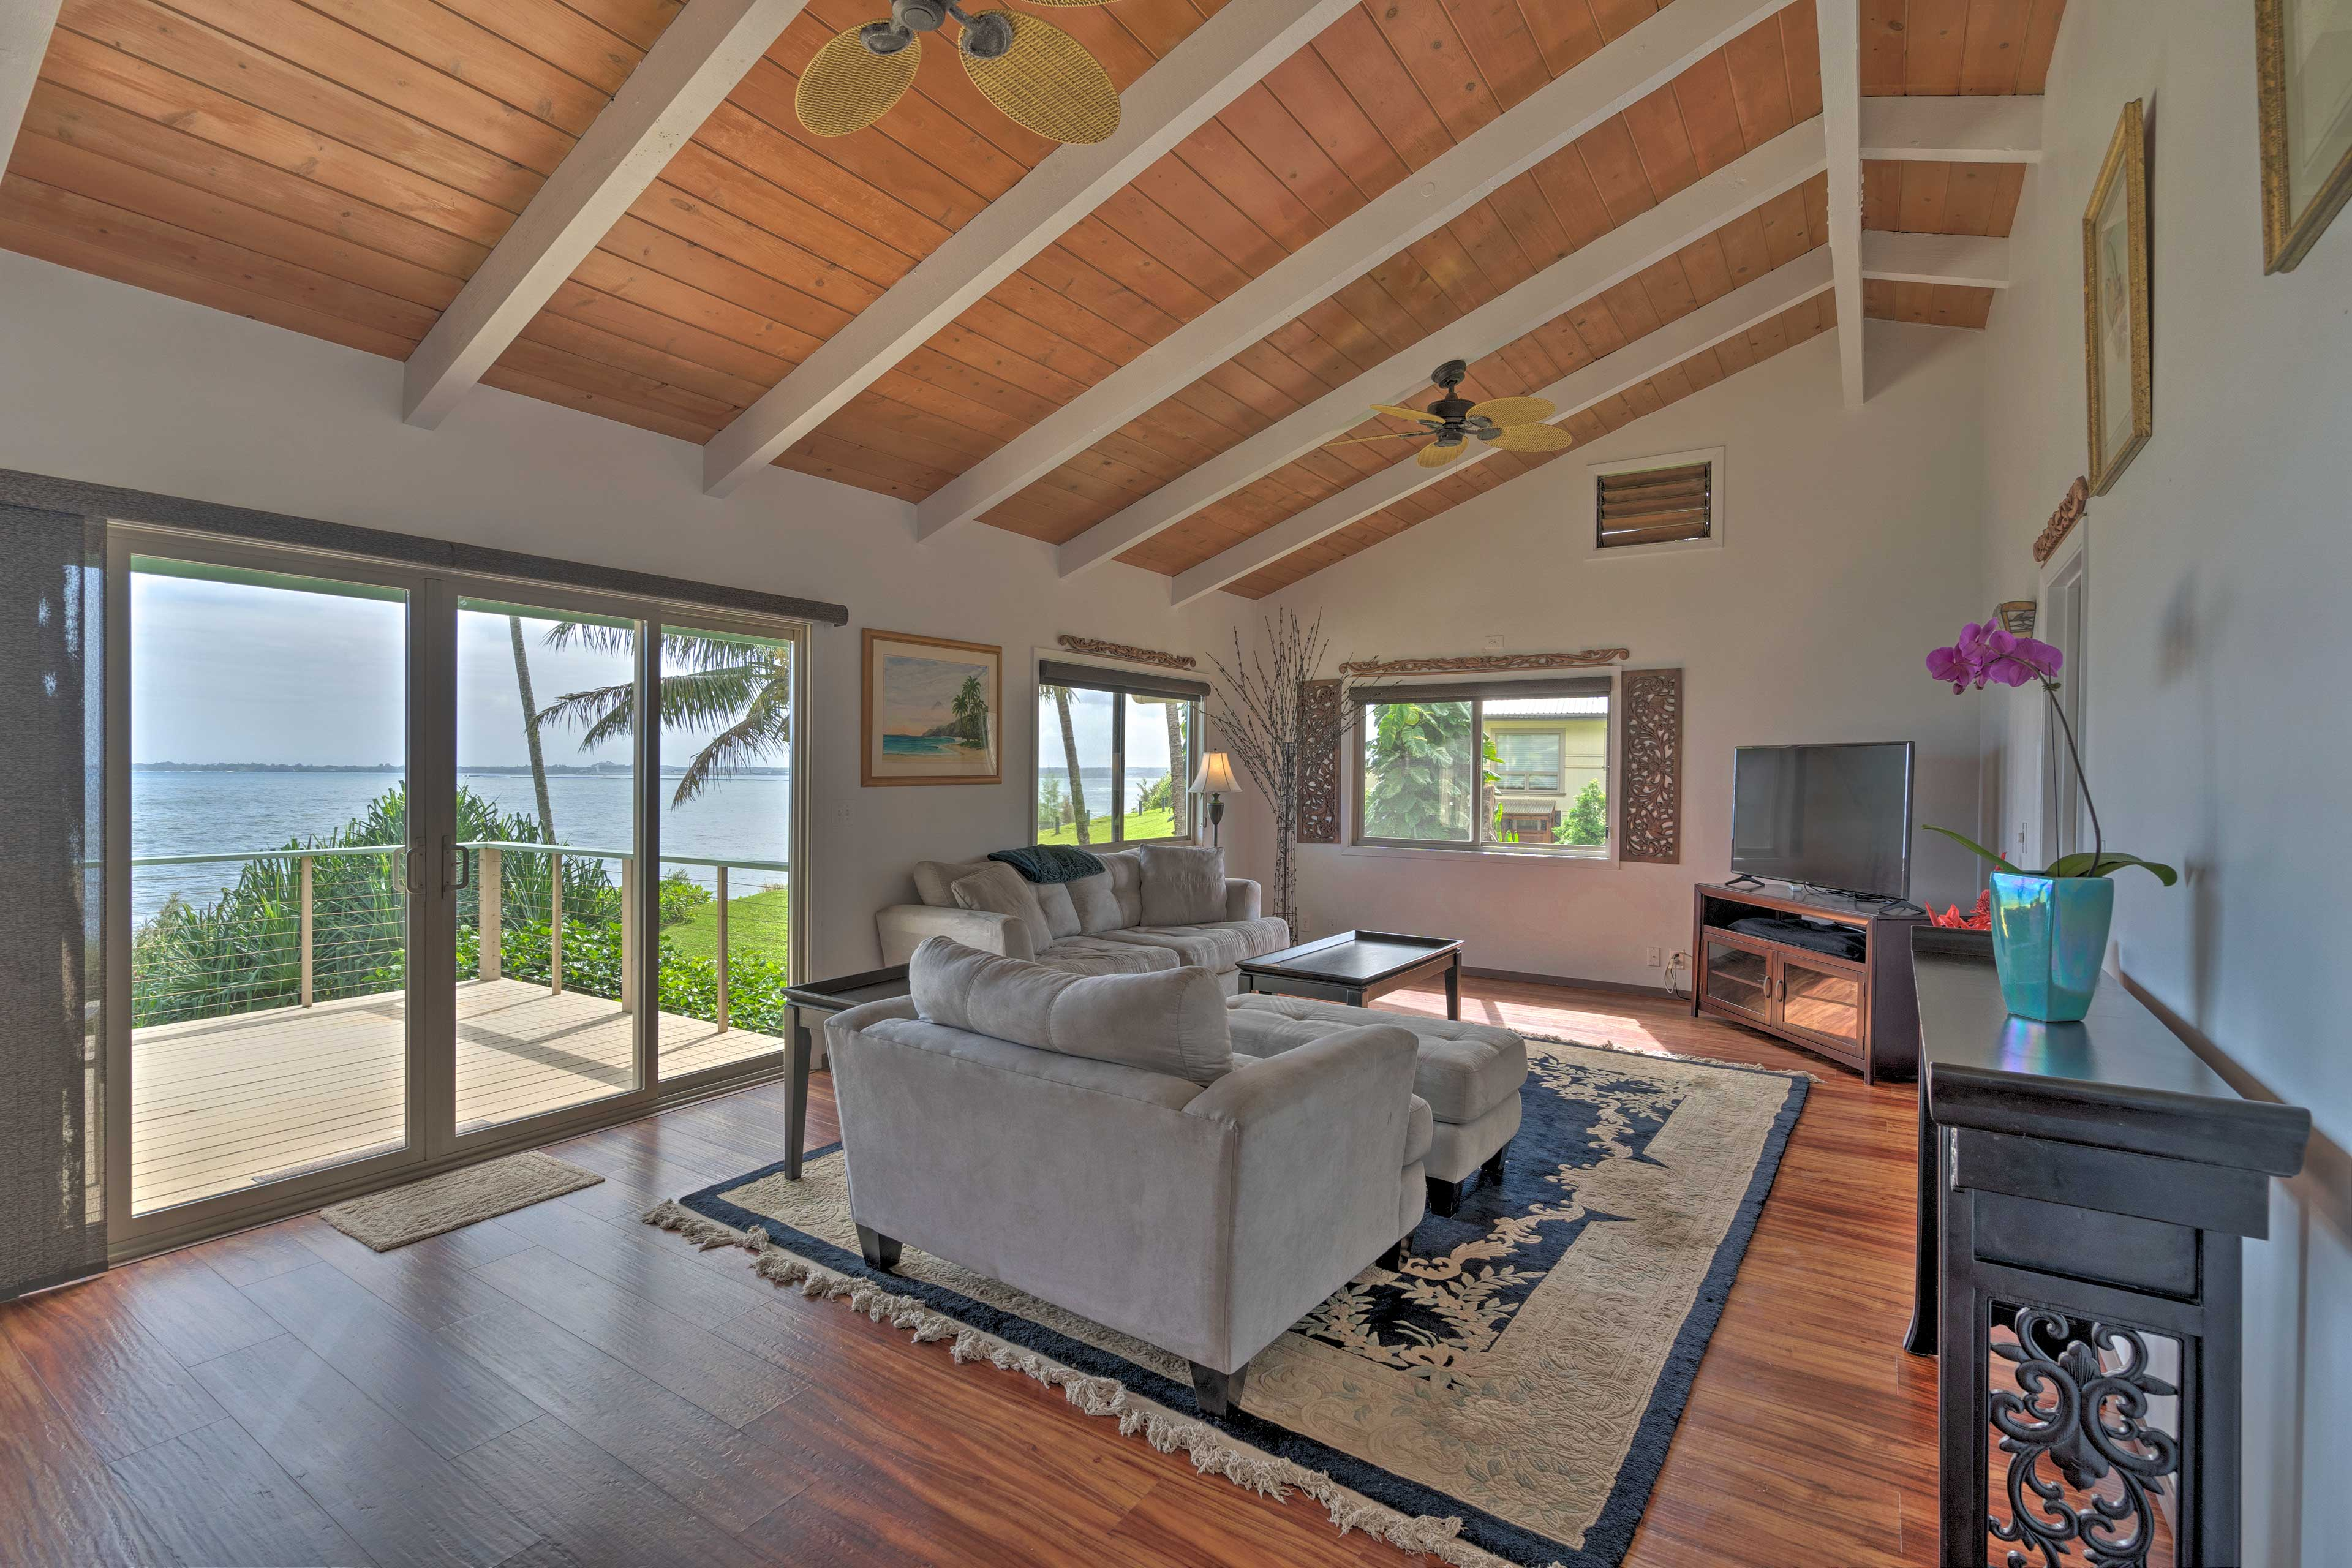 Wood accents and numerous windows set the stage for your Hawaiian getaway.